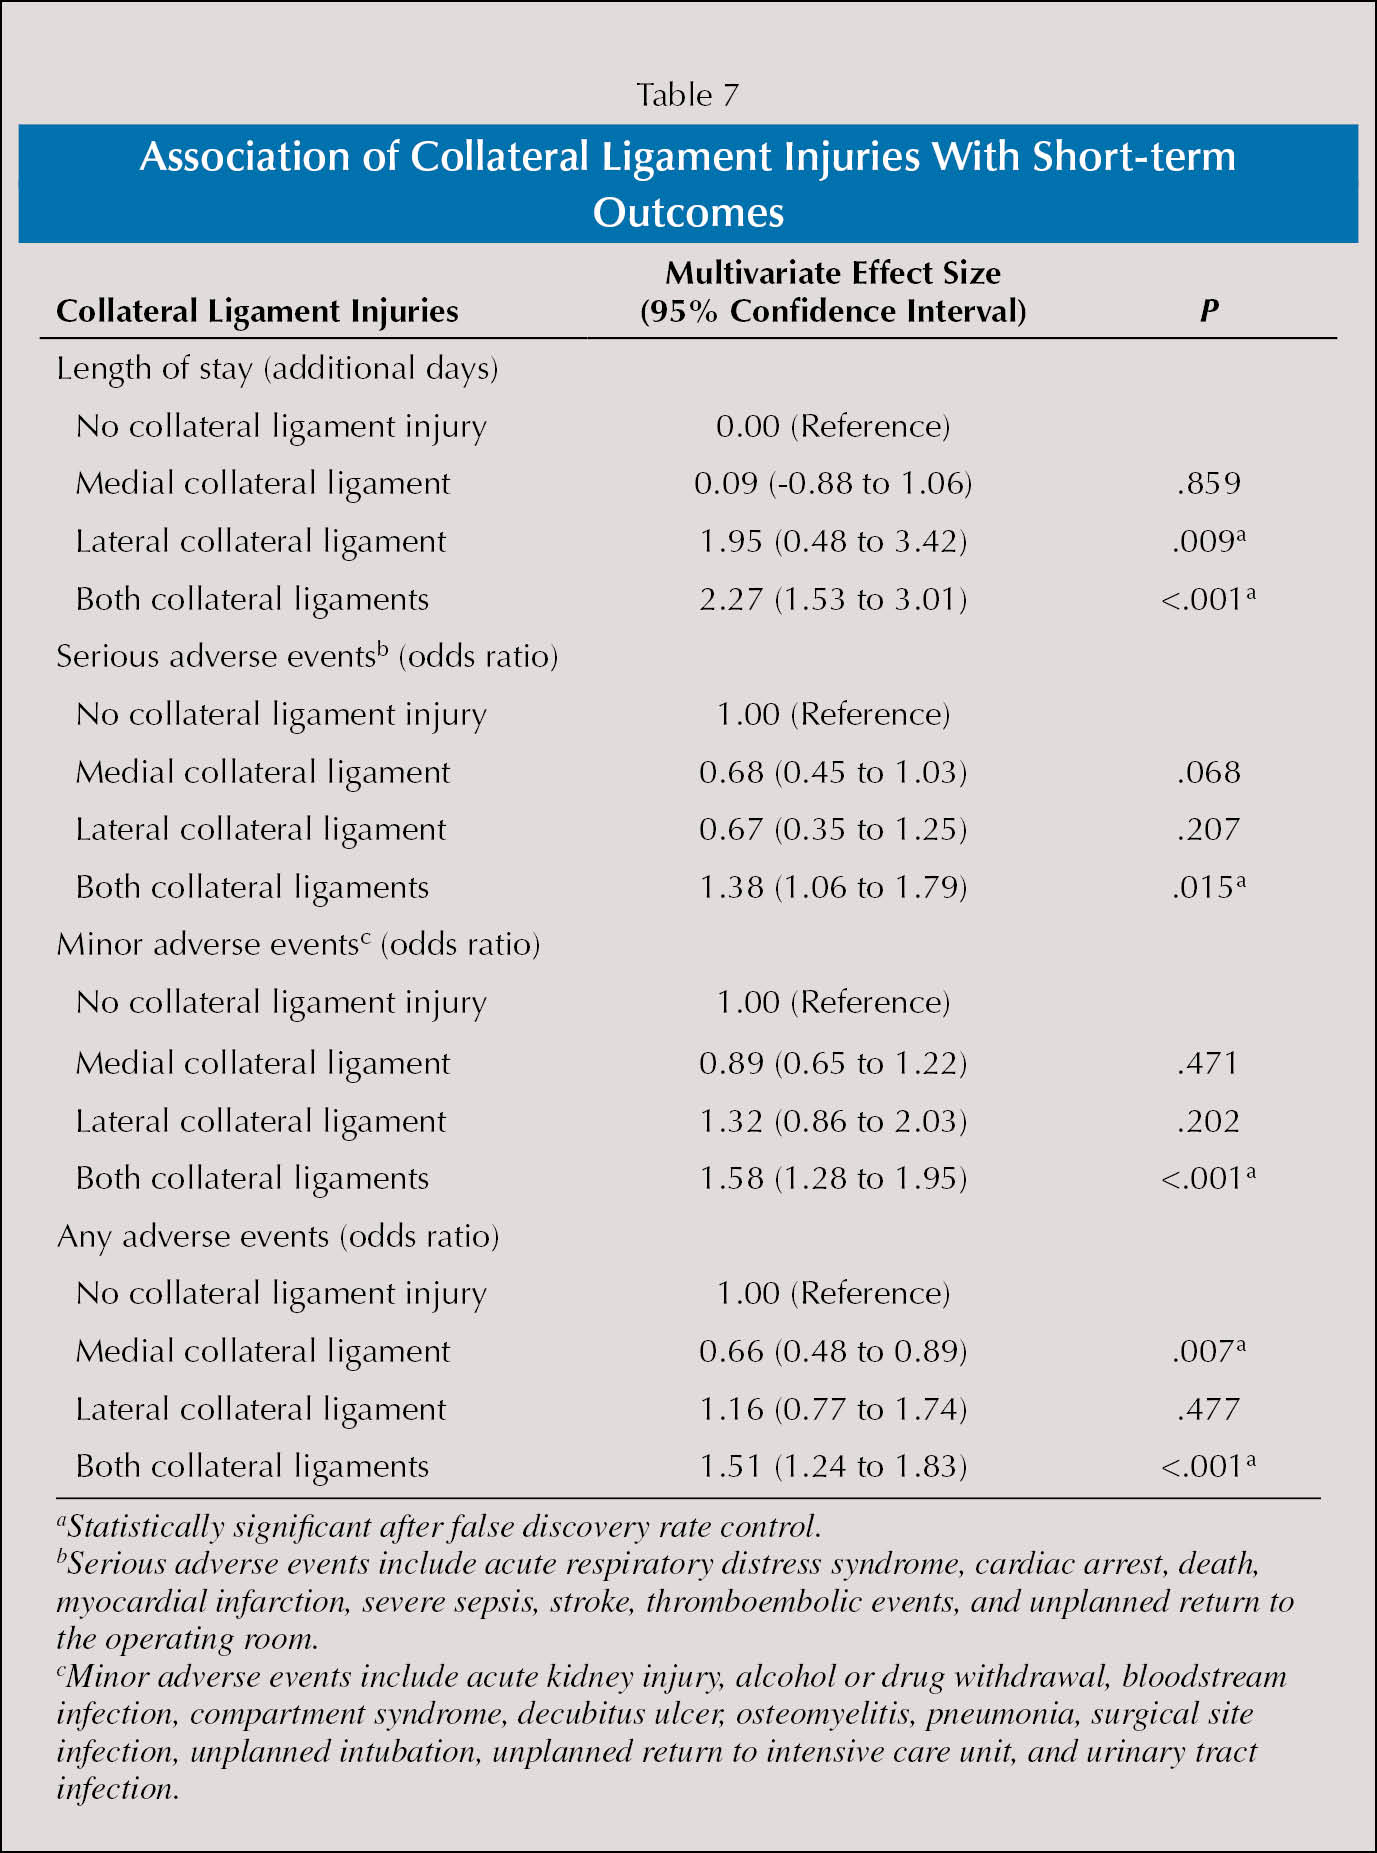 Association of Collateral Ligament Injuries With Short-term Outcomes